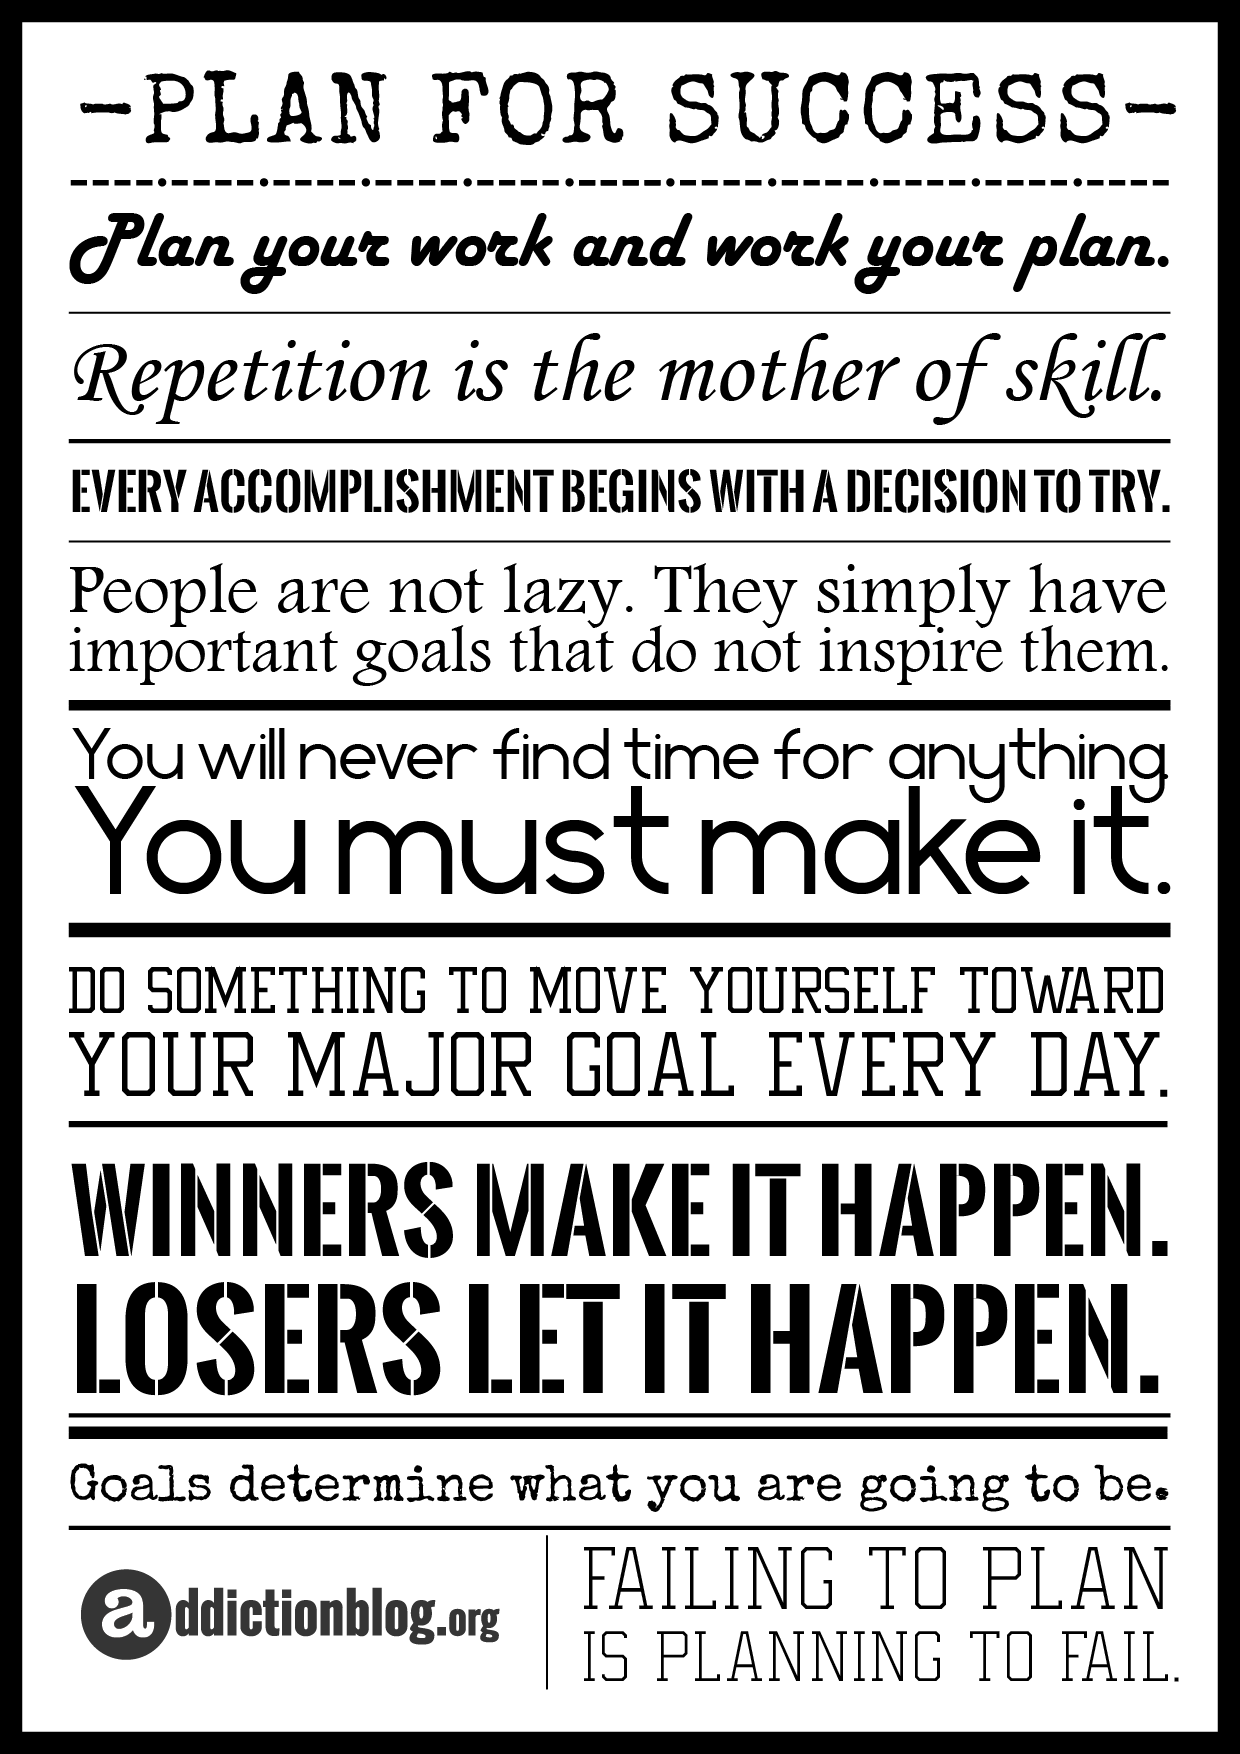 Addiction Plan for Recovery: Quotes for Success [POSTER]